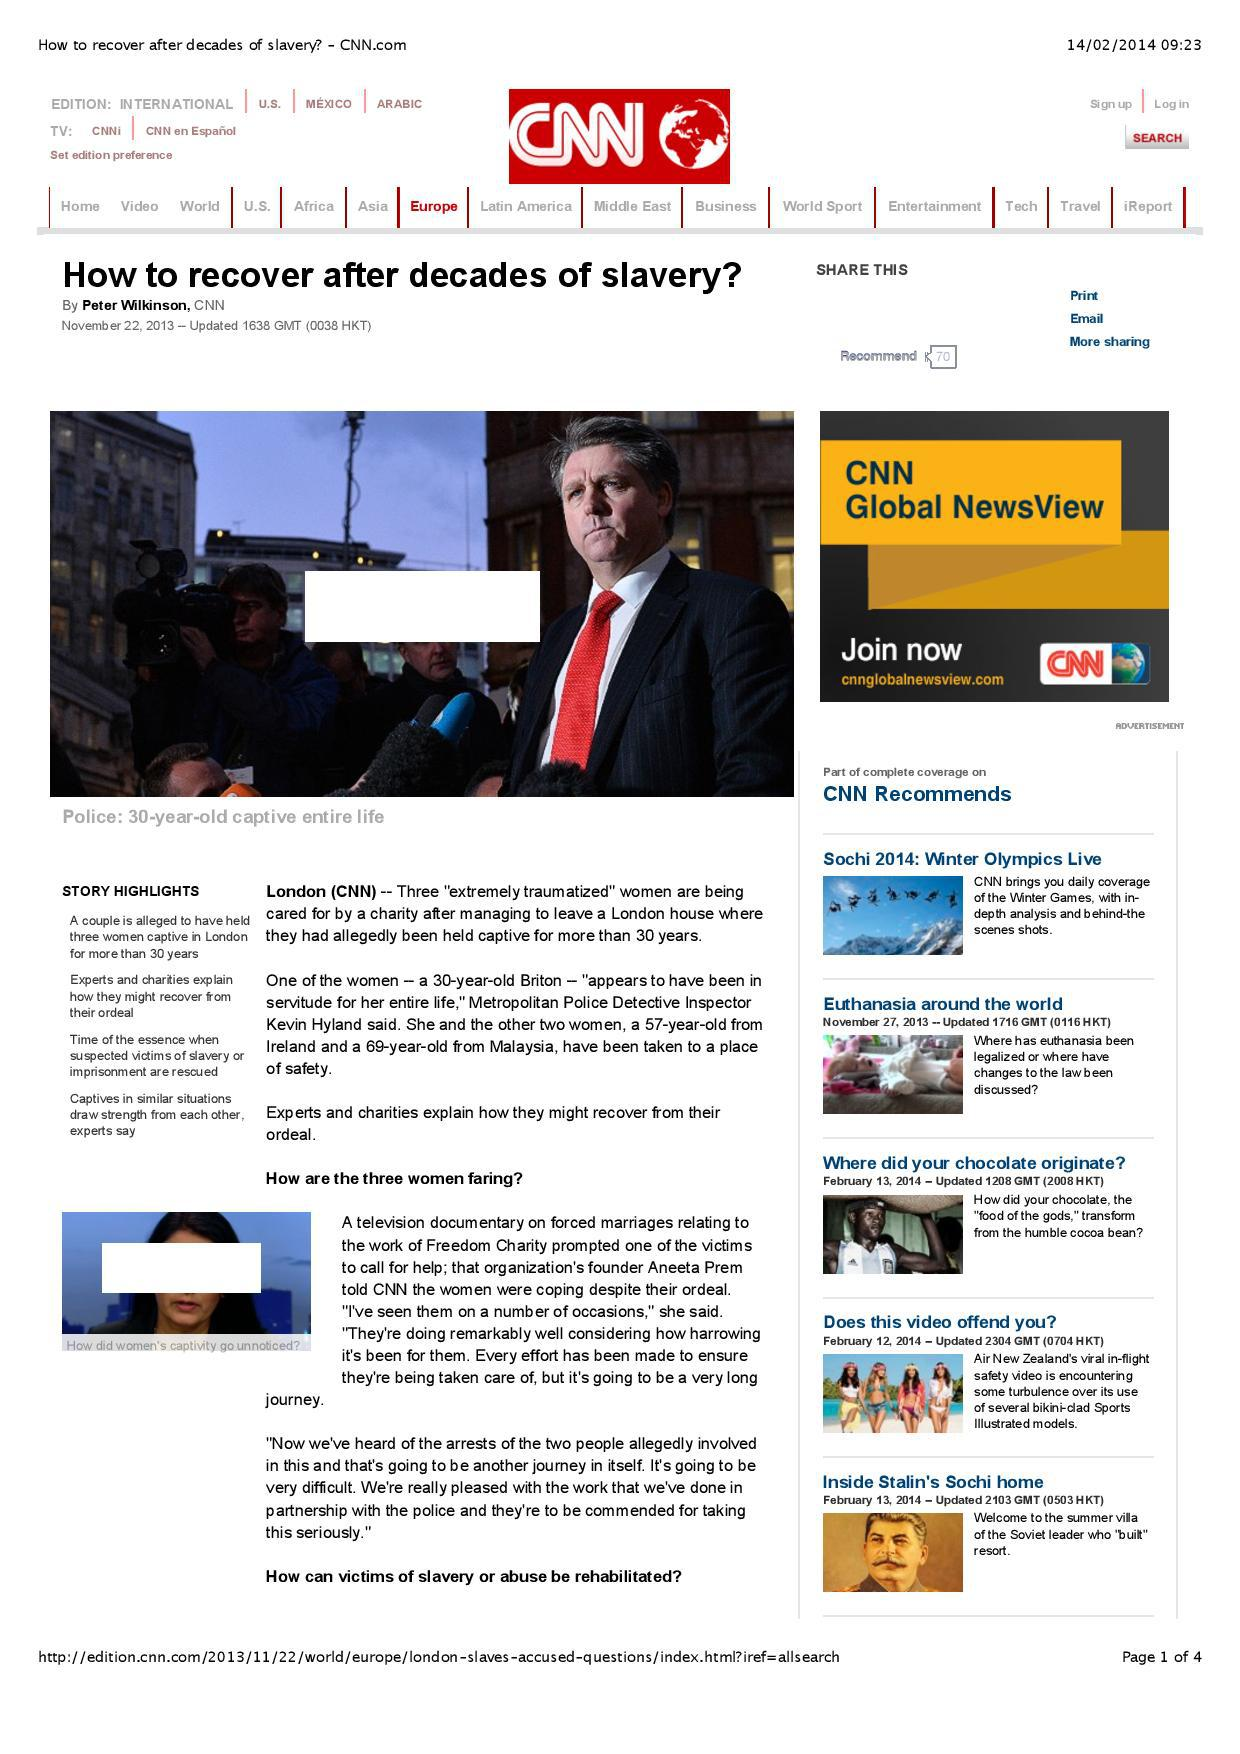 cnn-how-to-recover-after-decades-of-slavery-page-001